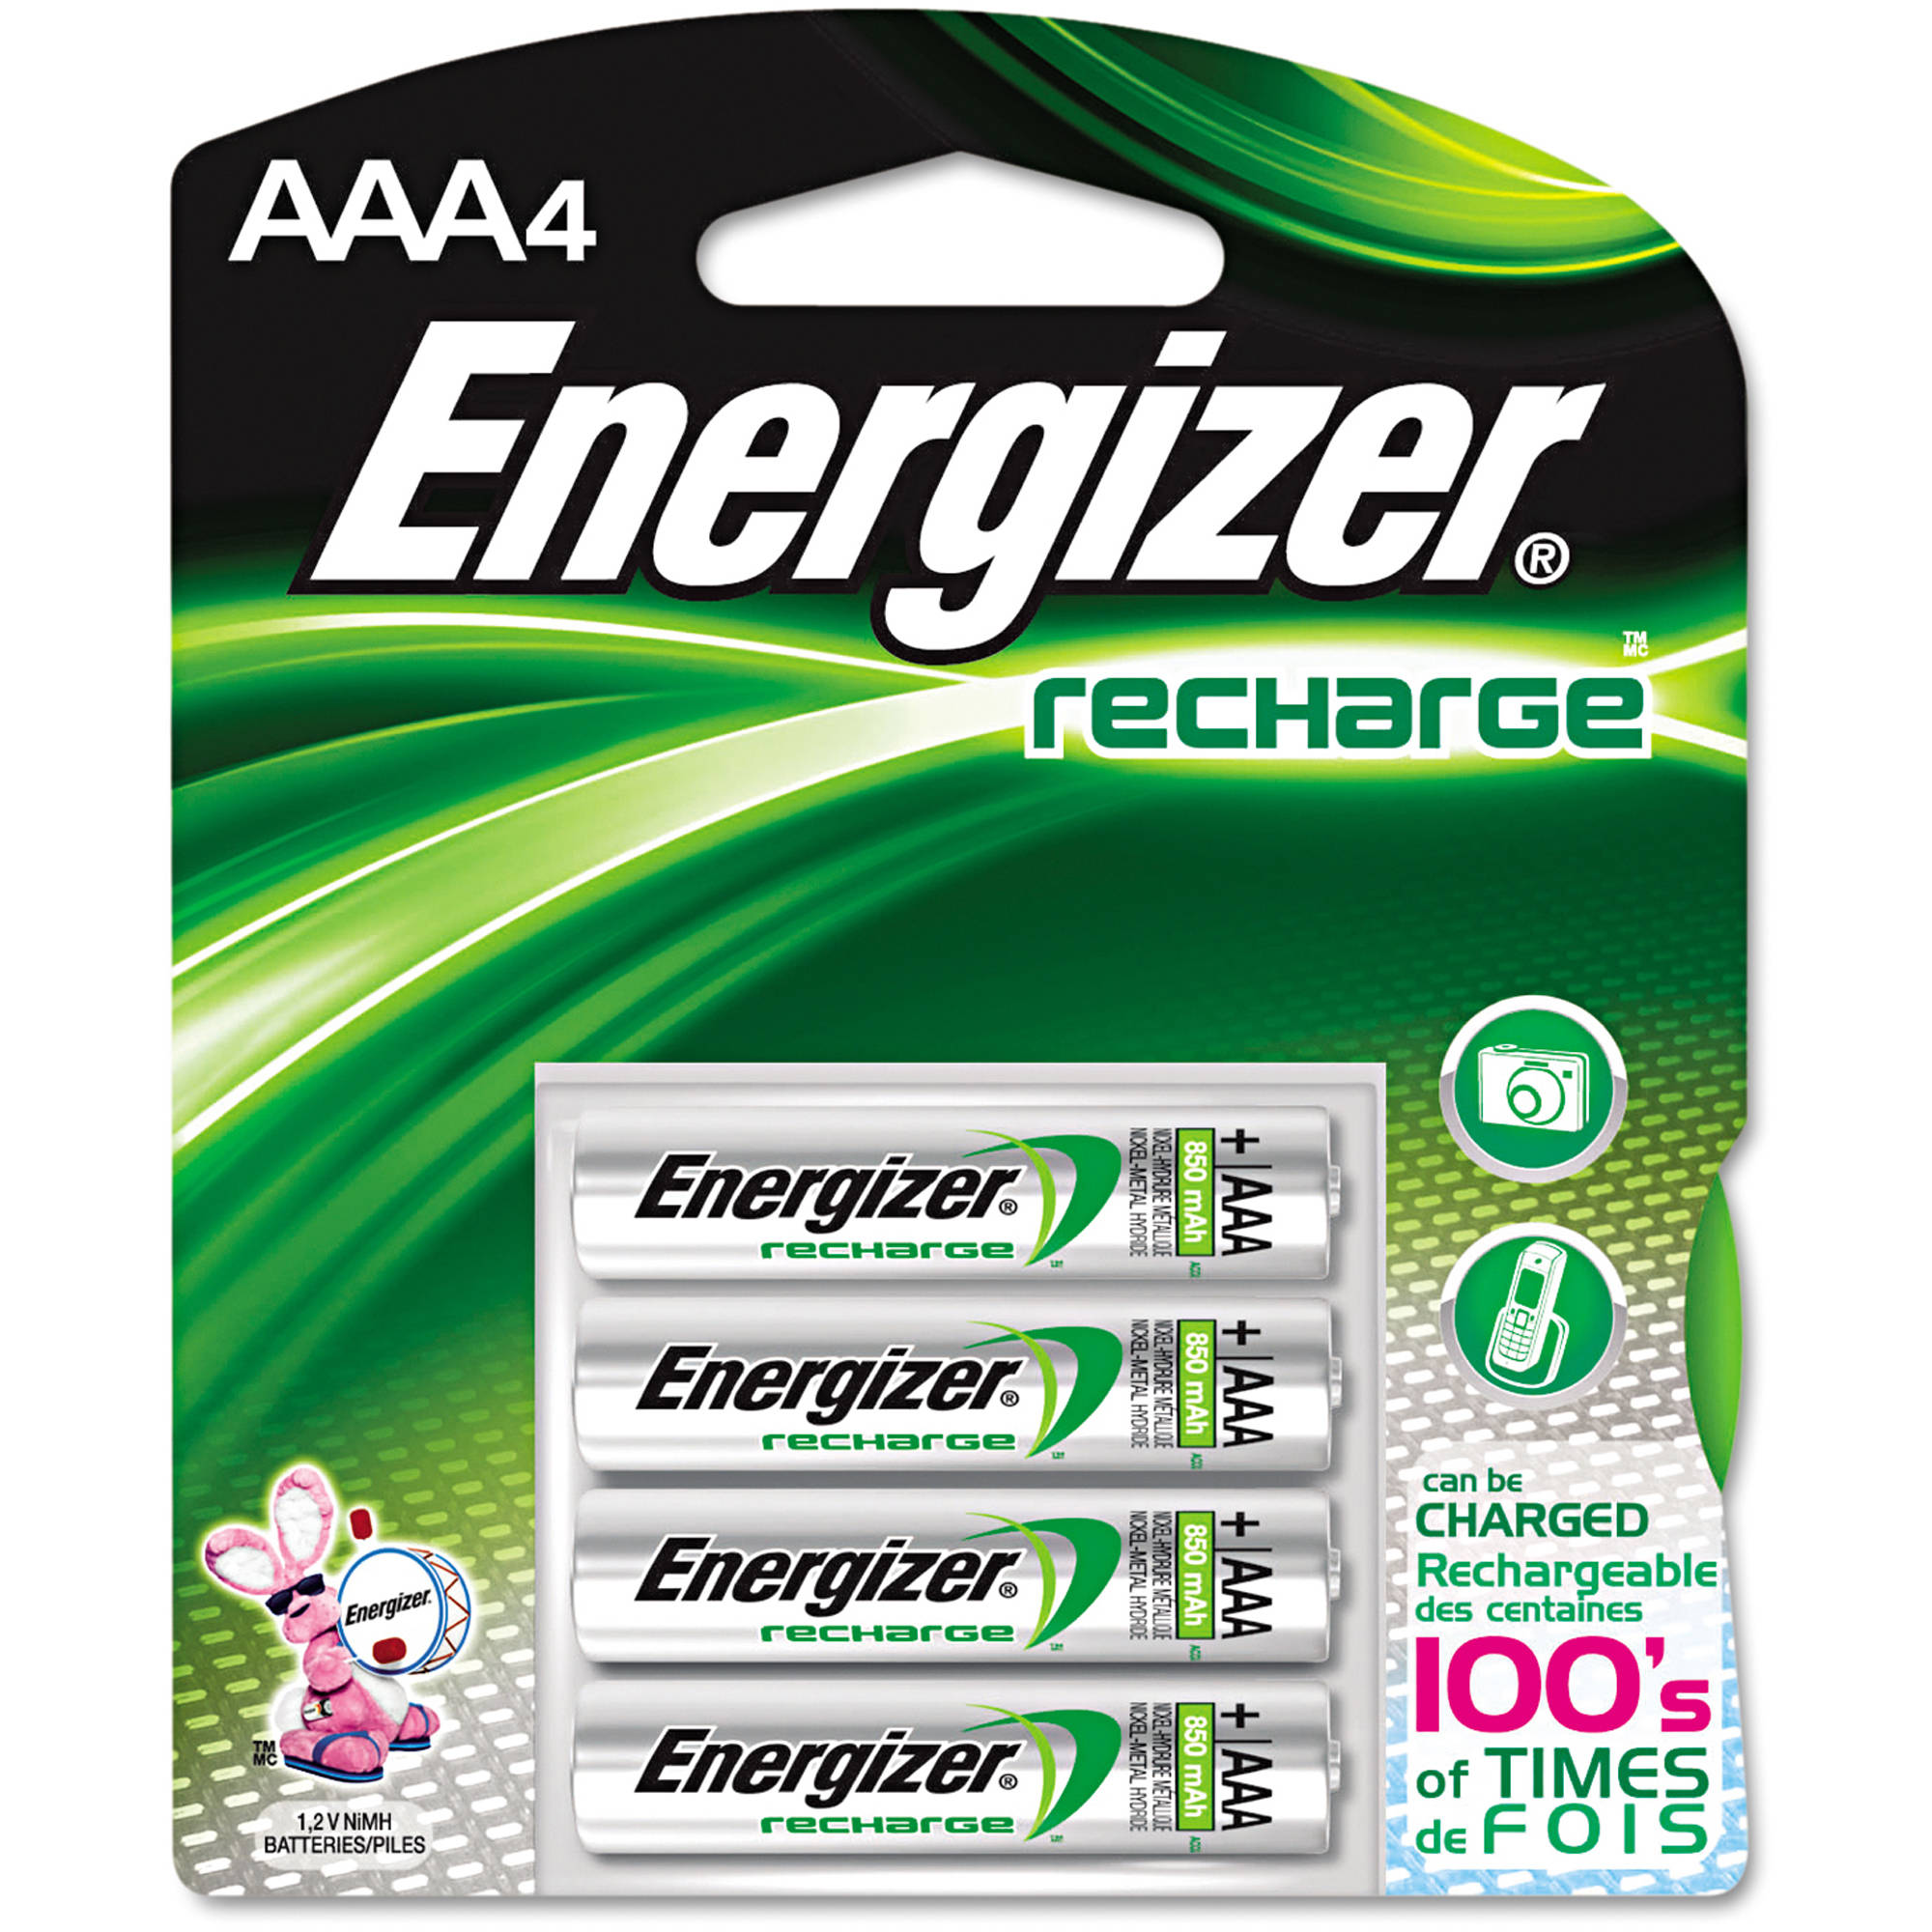 Energizer - Rechargeable AAA Batteries - 4-Pack